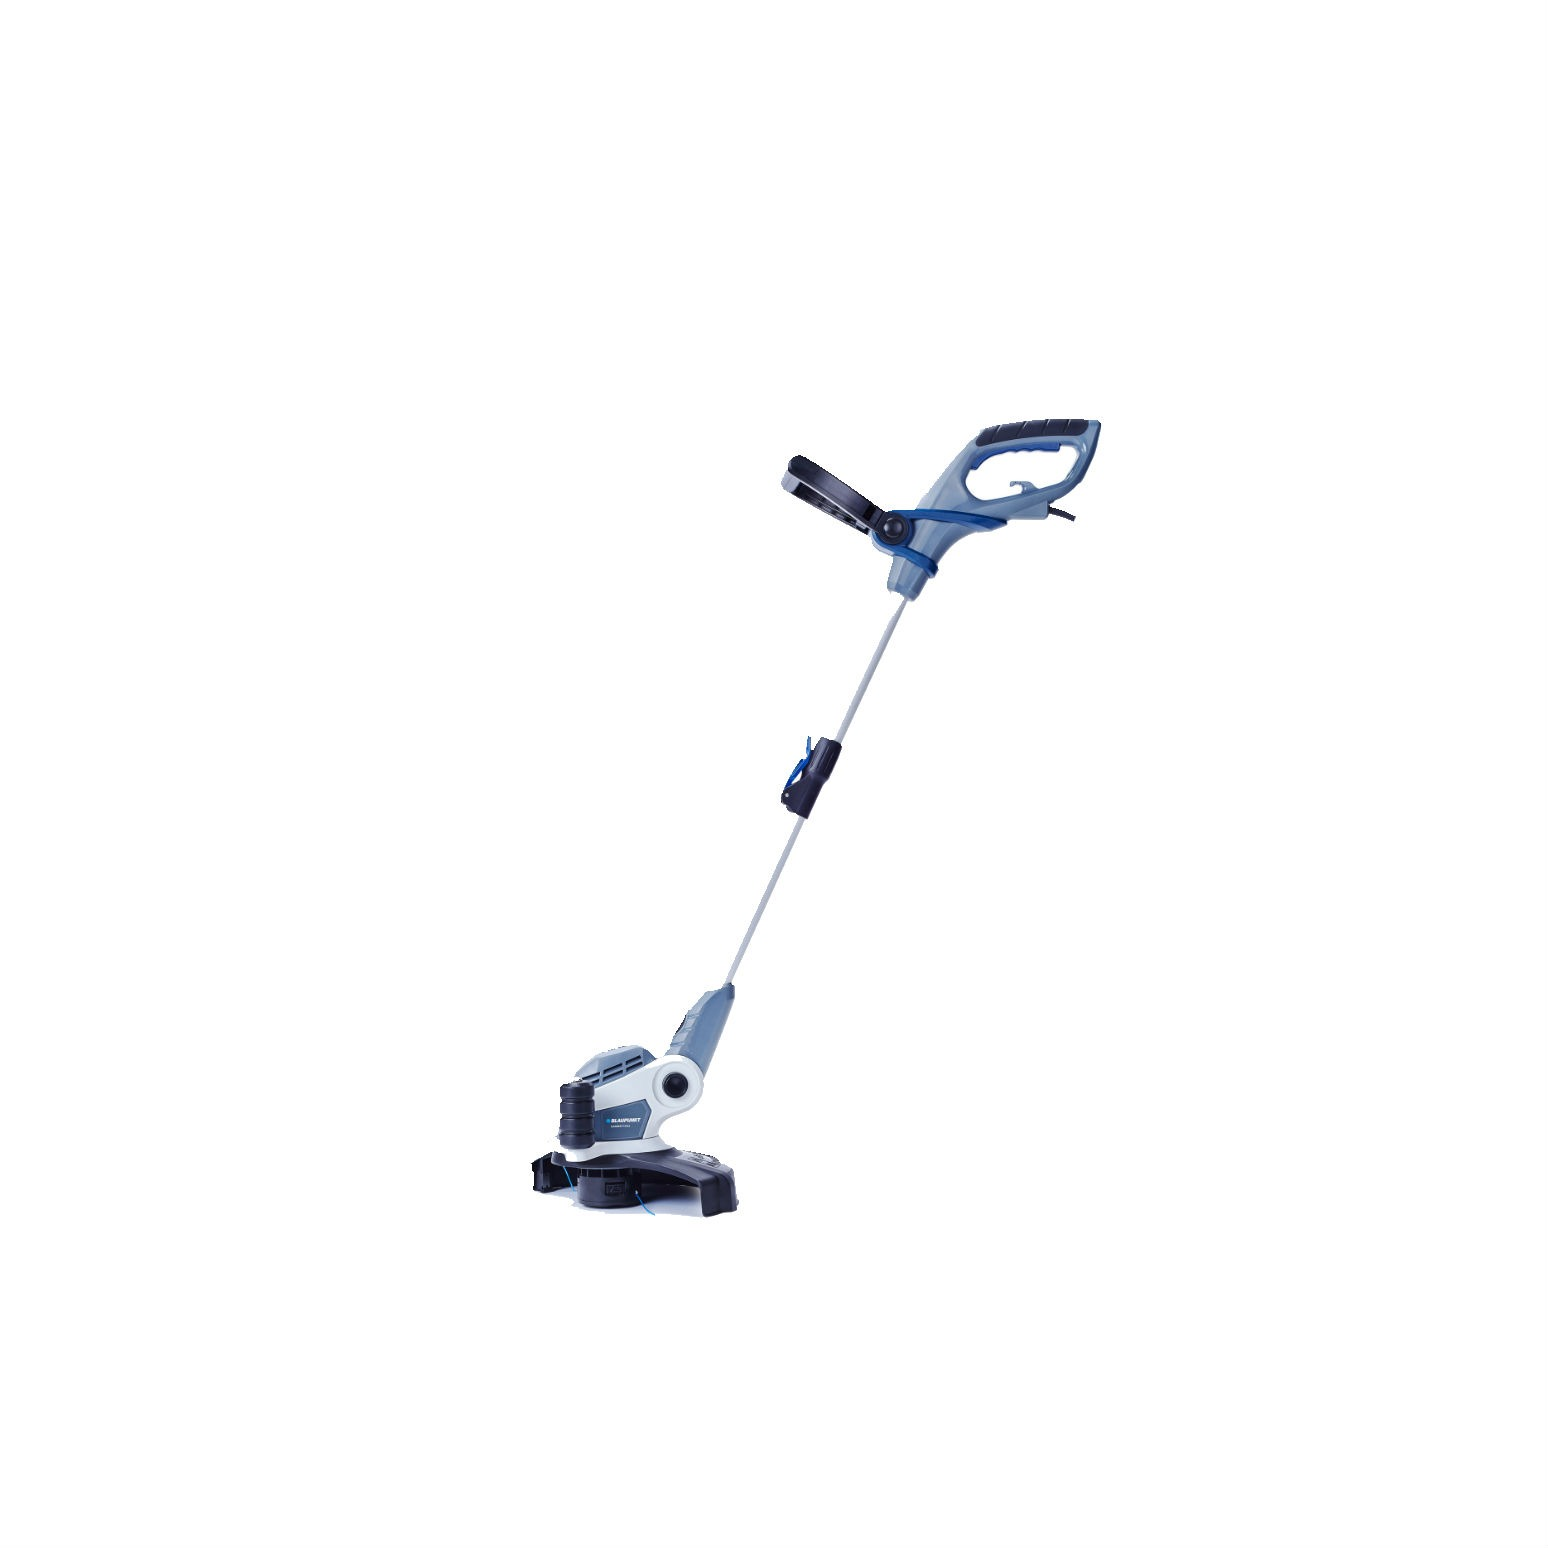 Blaupunkt GT4000 grass trimmer